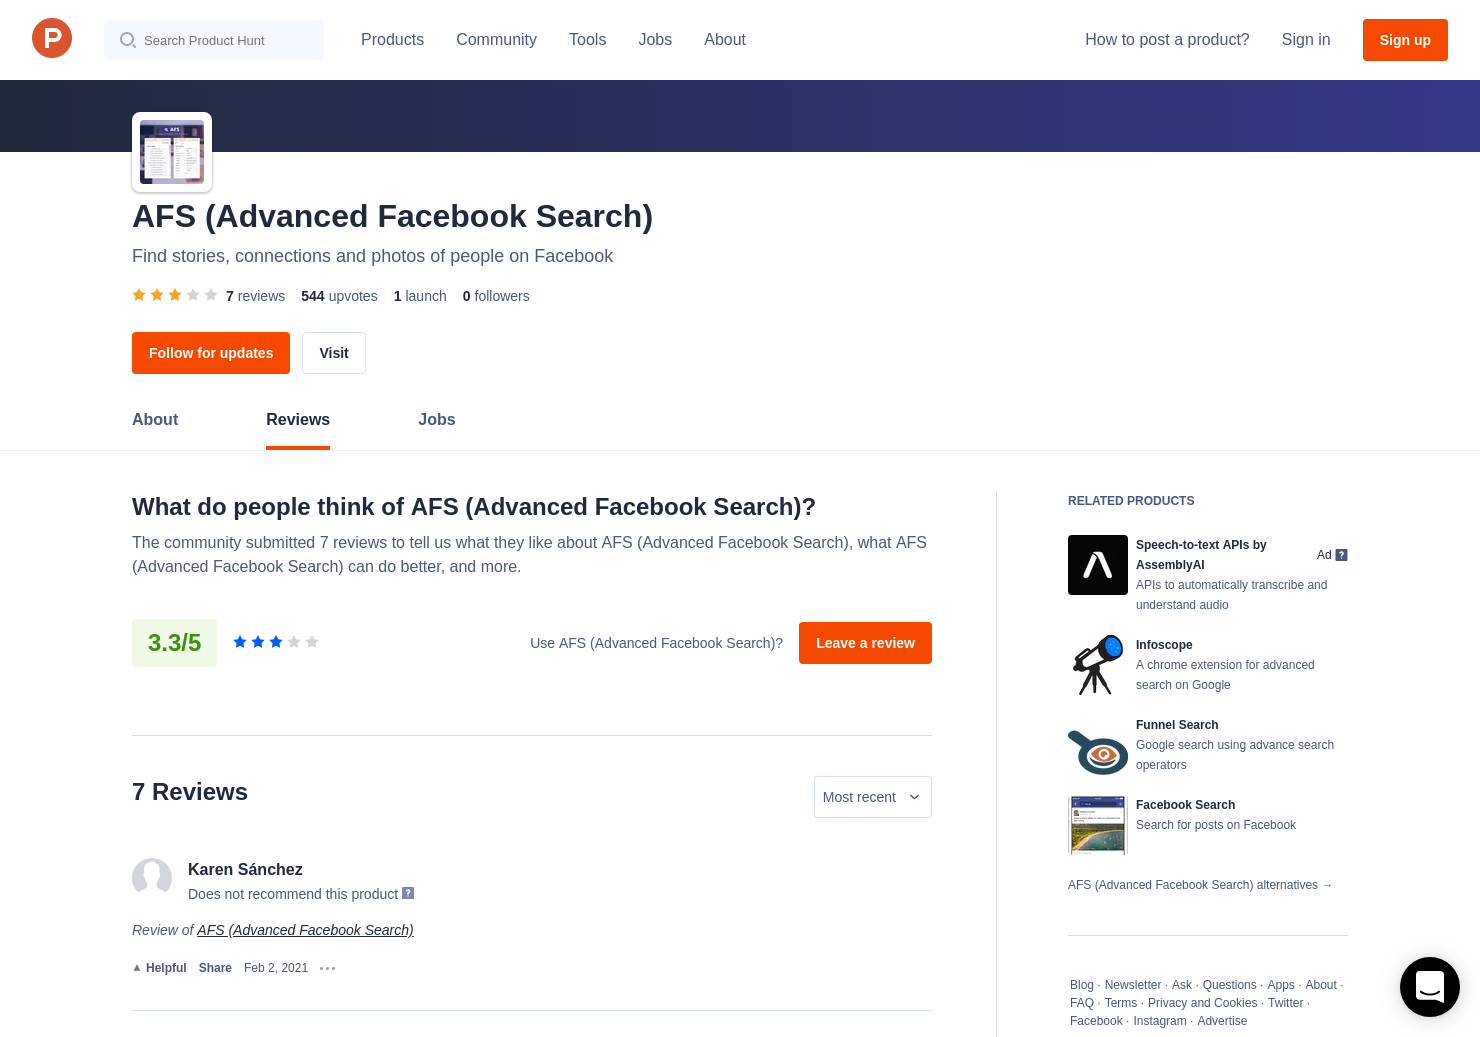 6 AFS (Advanced Facebook Search) Reviews - Pros, Cons and Rating